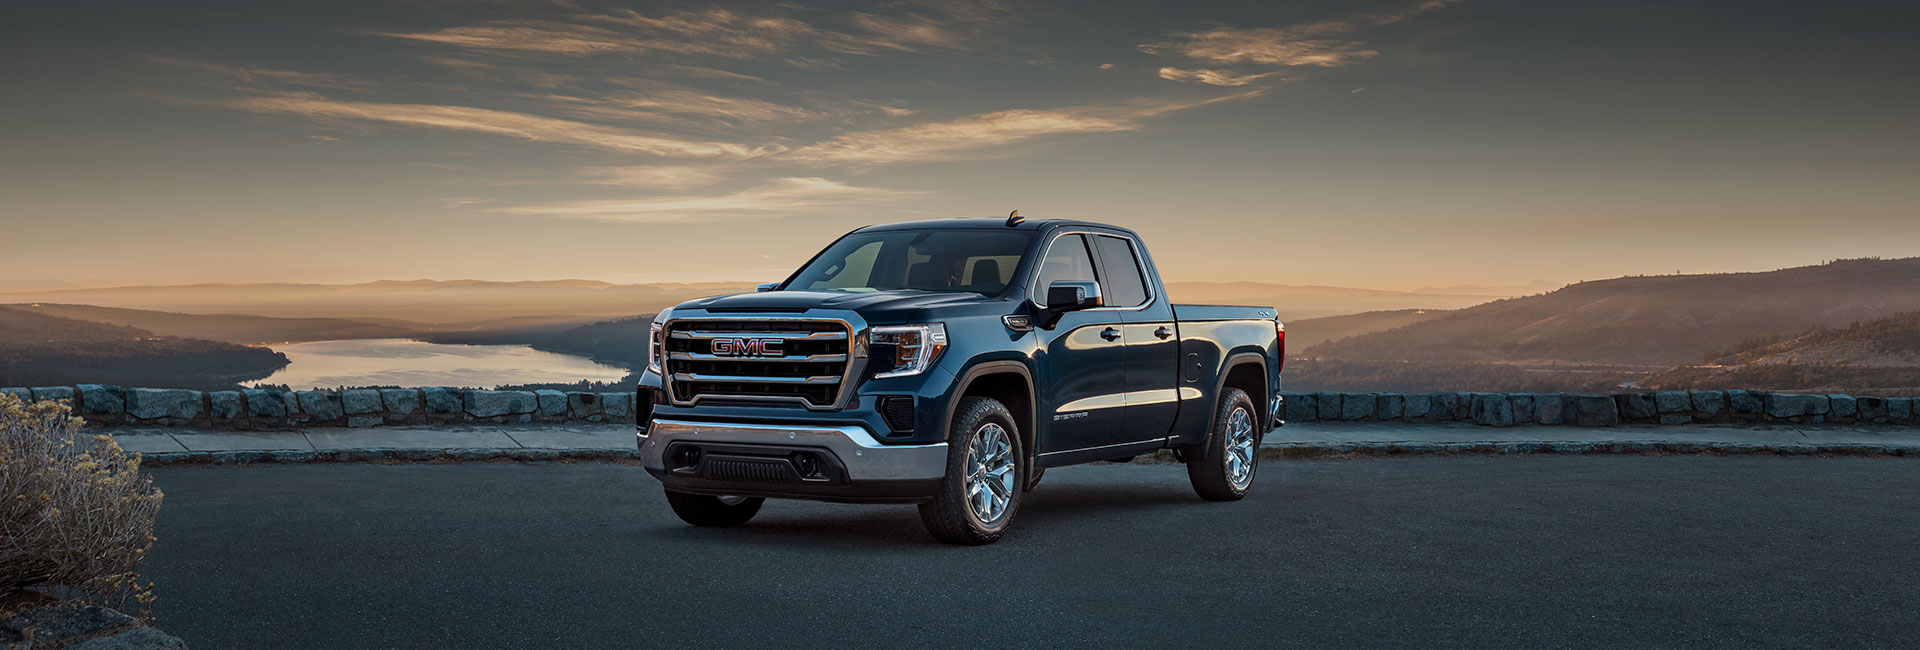 2019 GMC Truck - Rivertown Buick GMC